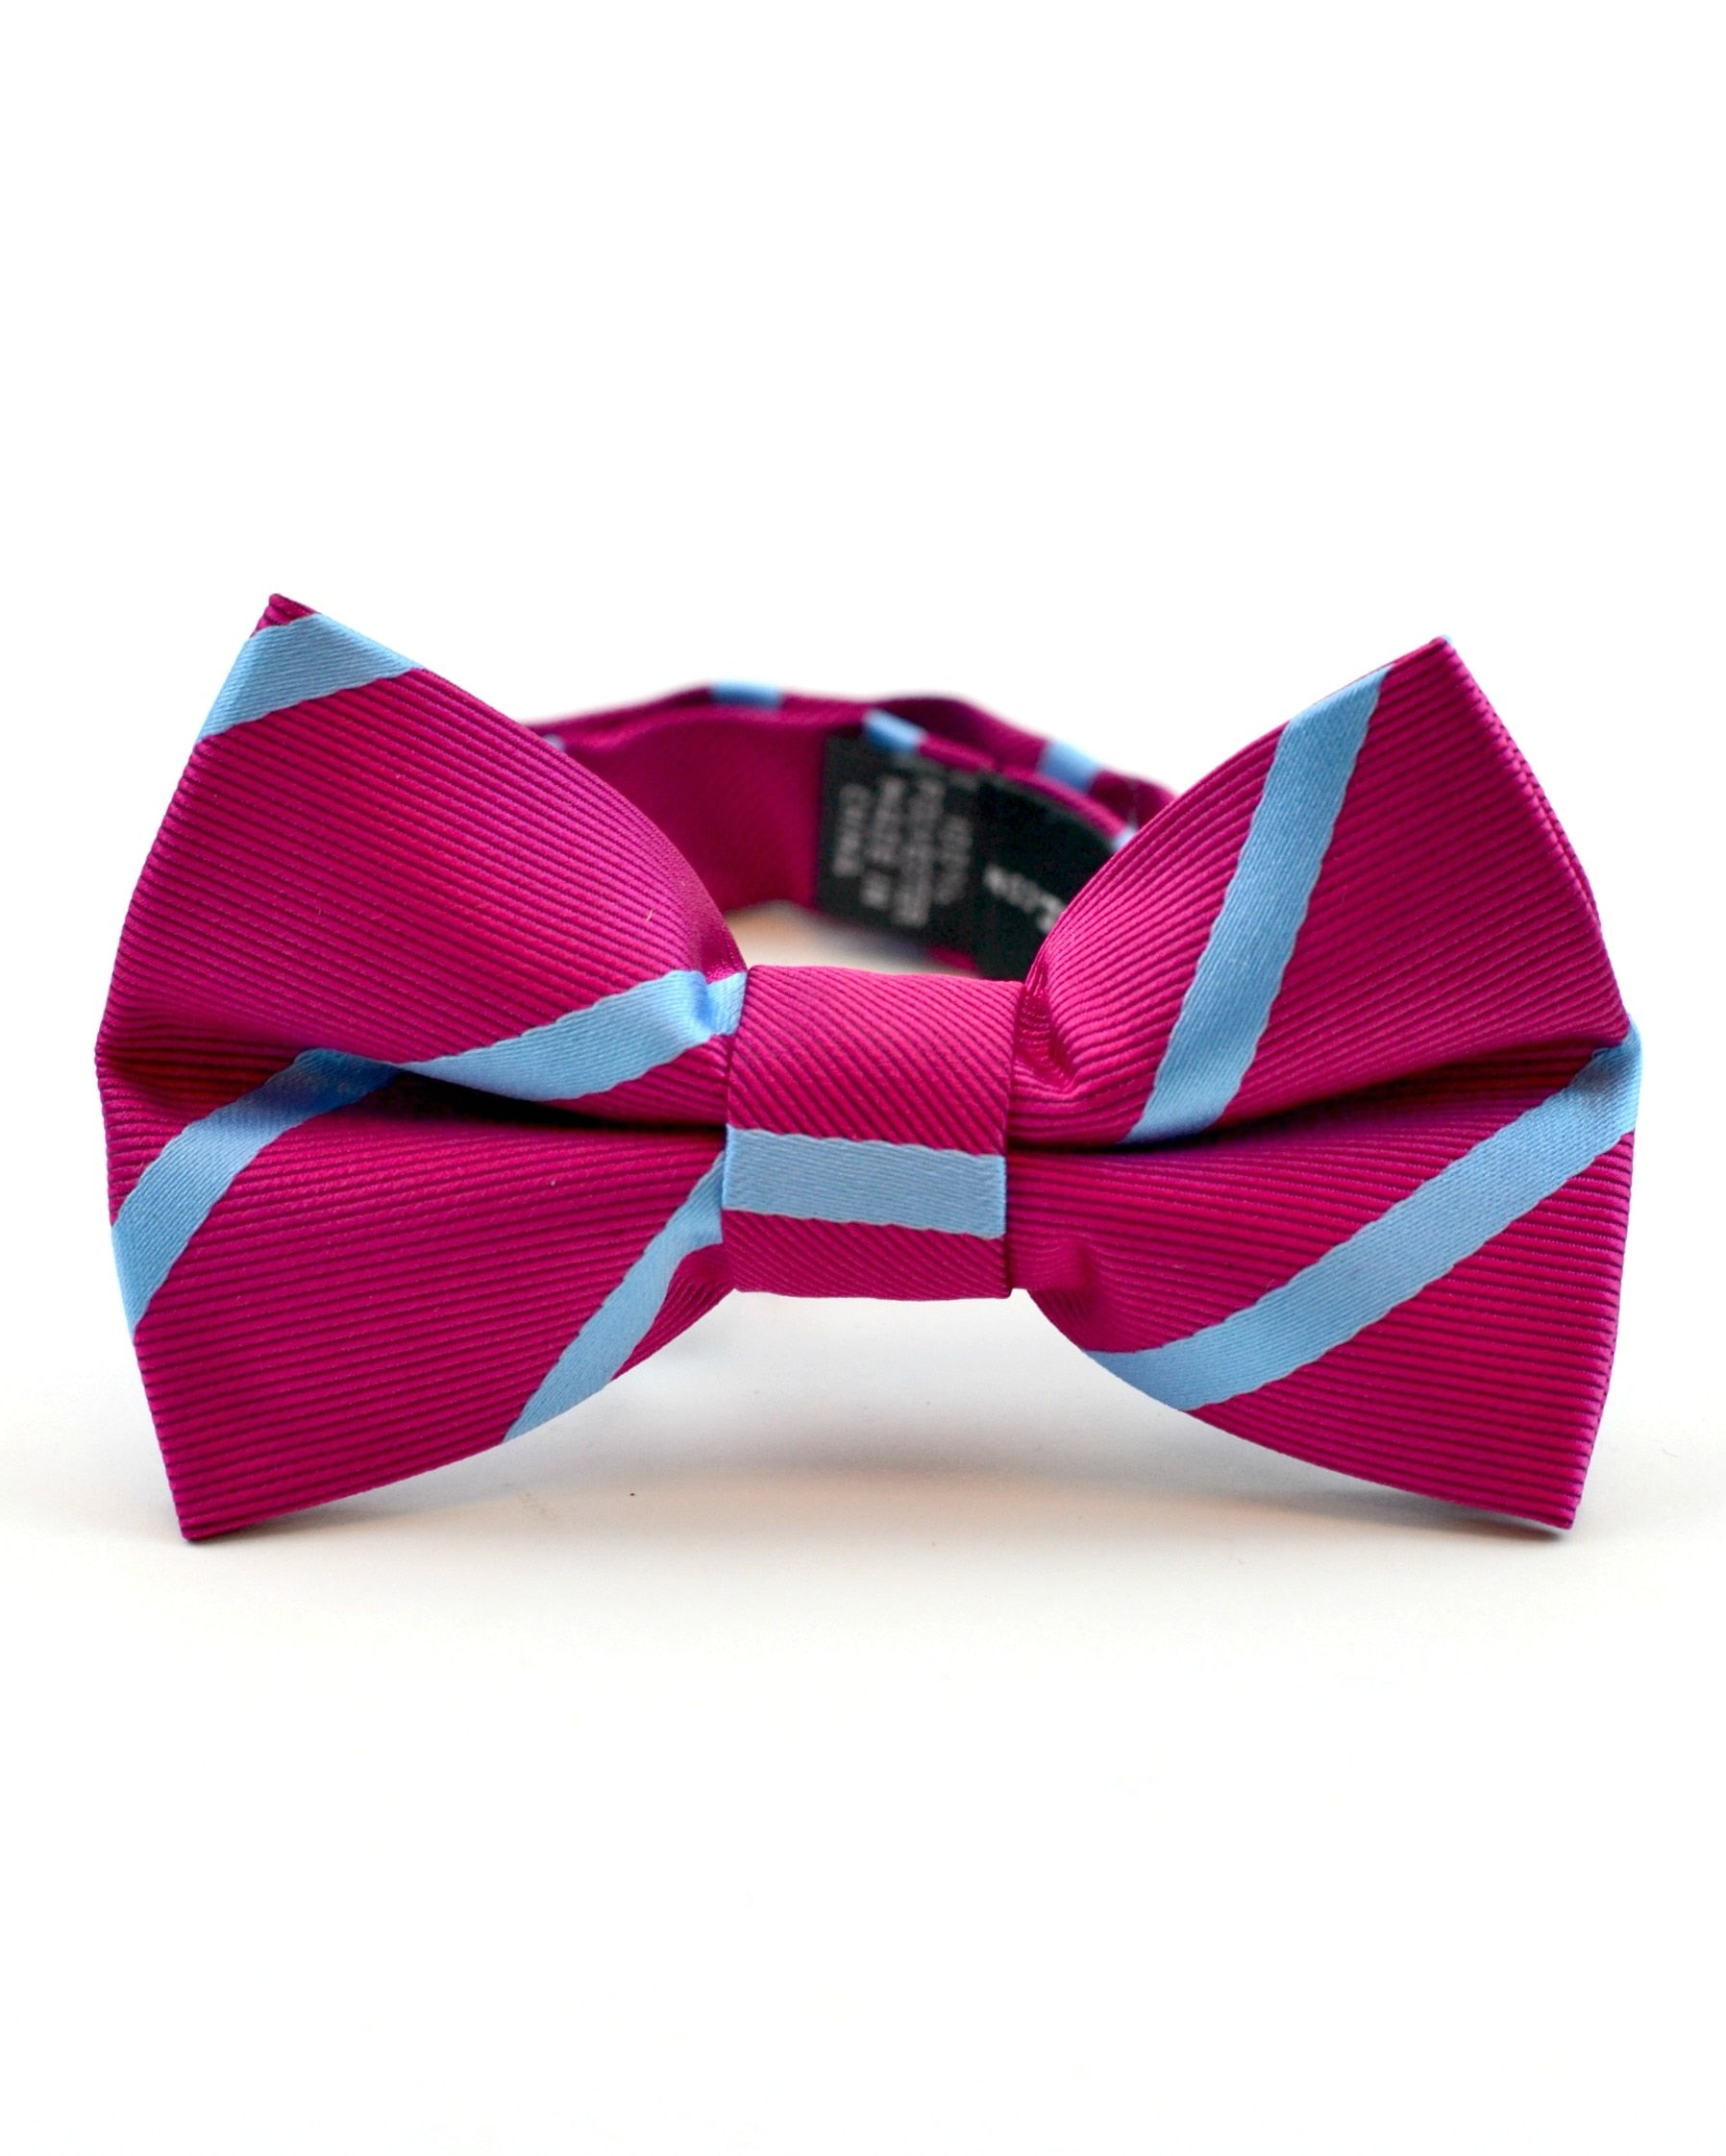 watermelon-and-blue-stripe-bow-tie.jpg